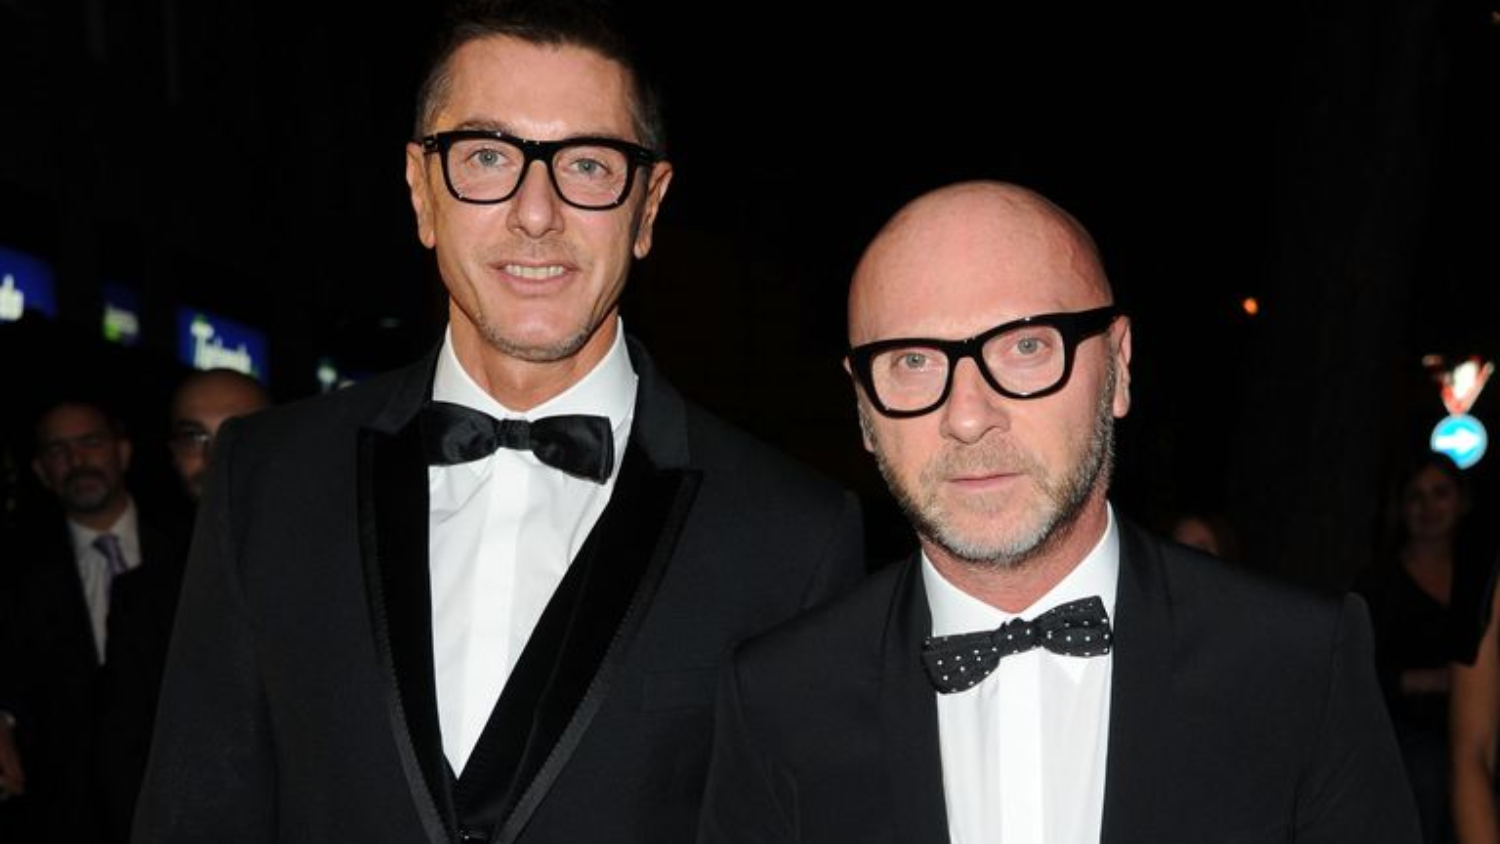 Dolce & Gabbana teams up with university to support coronavirus research